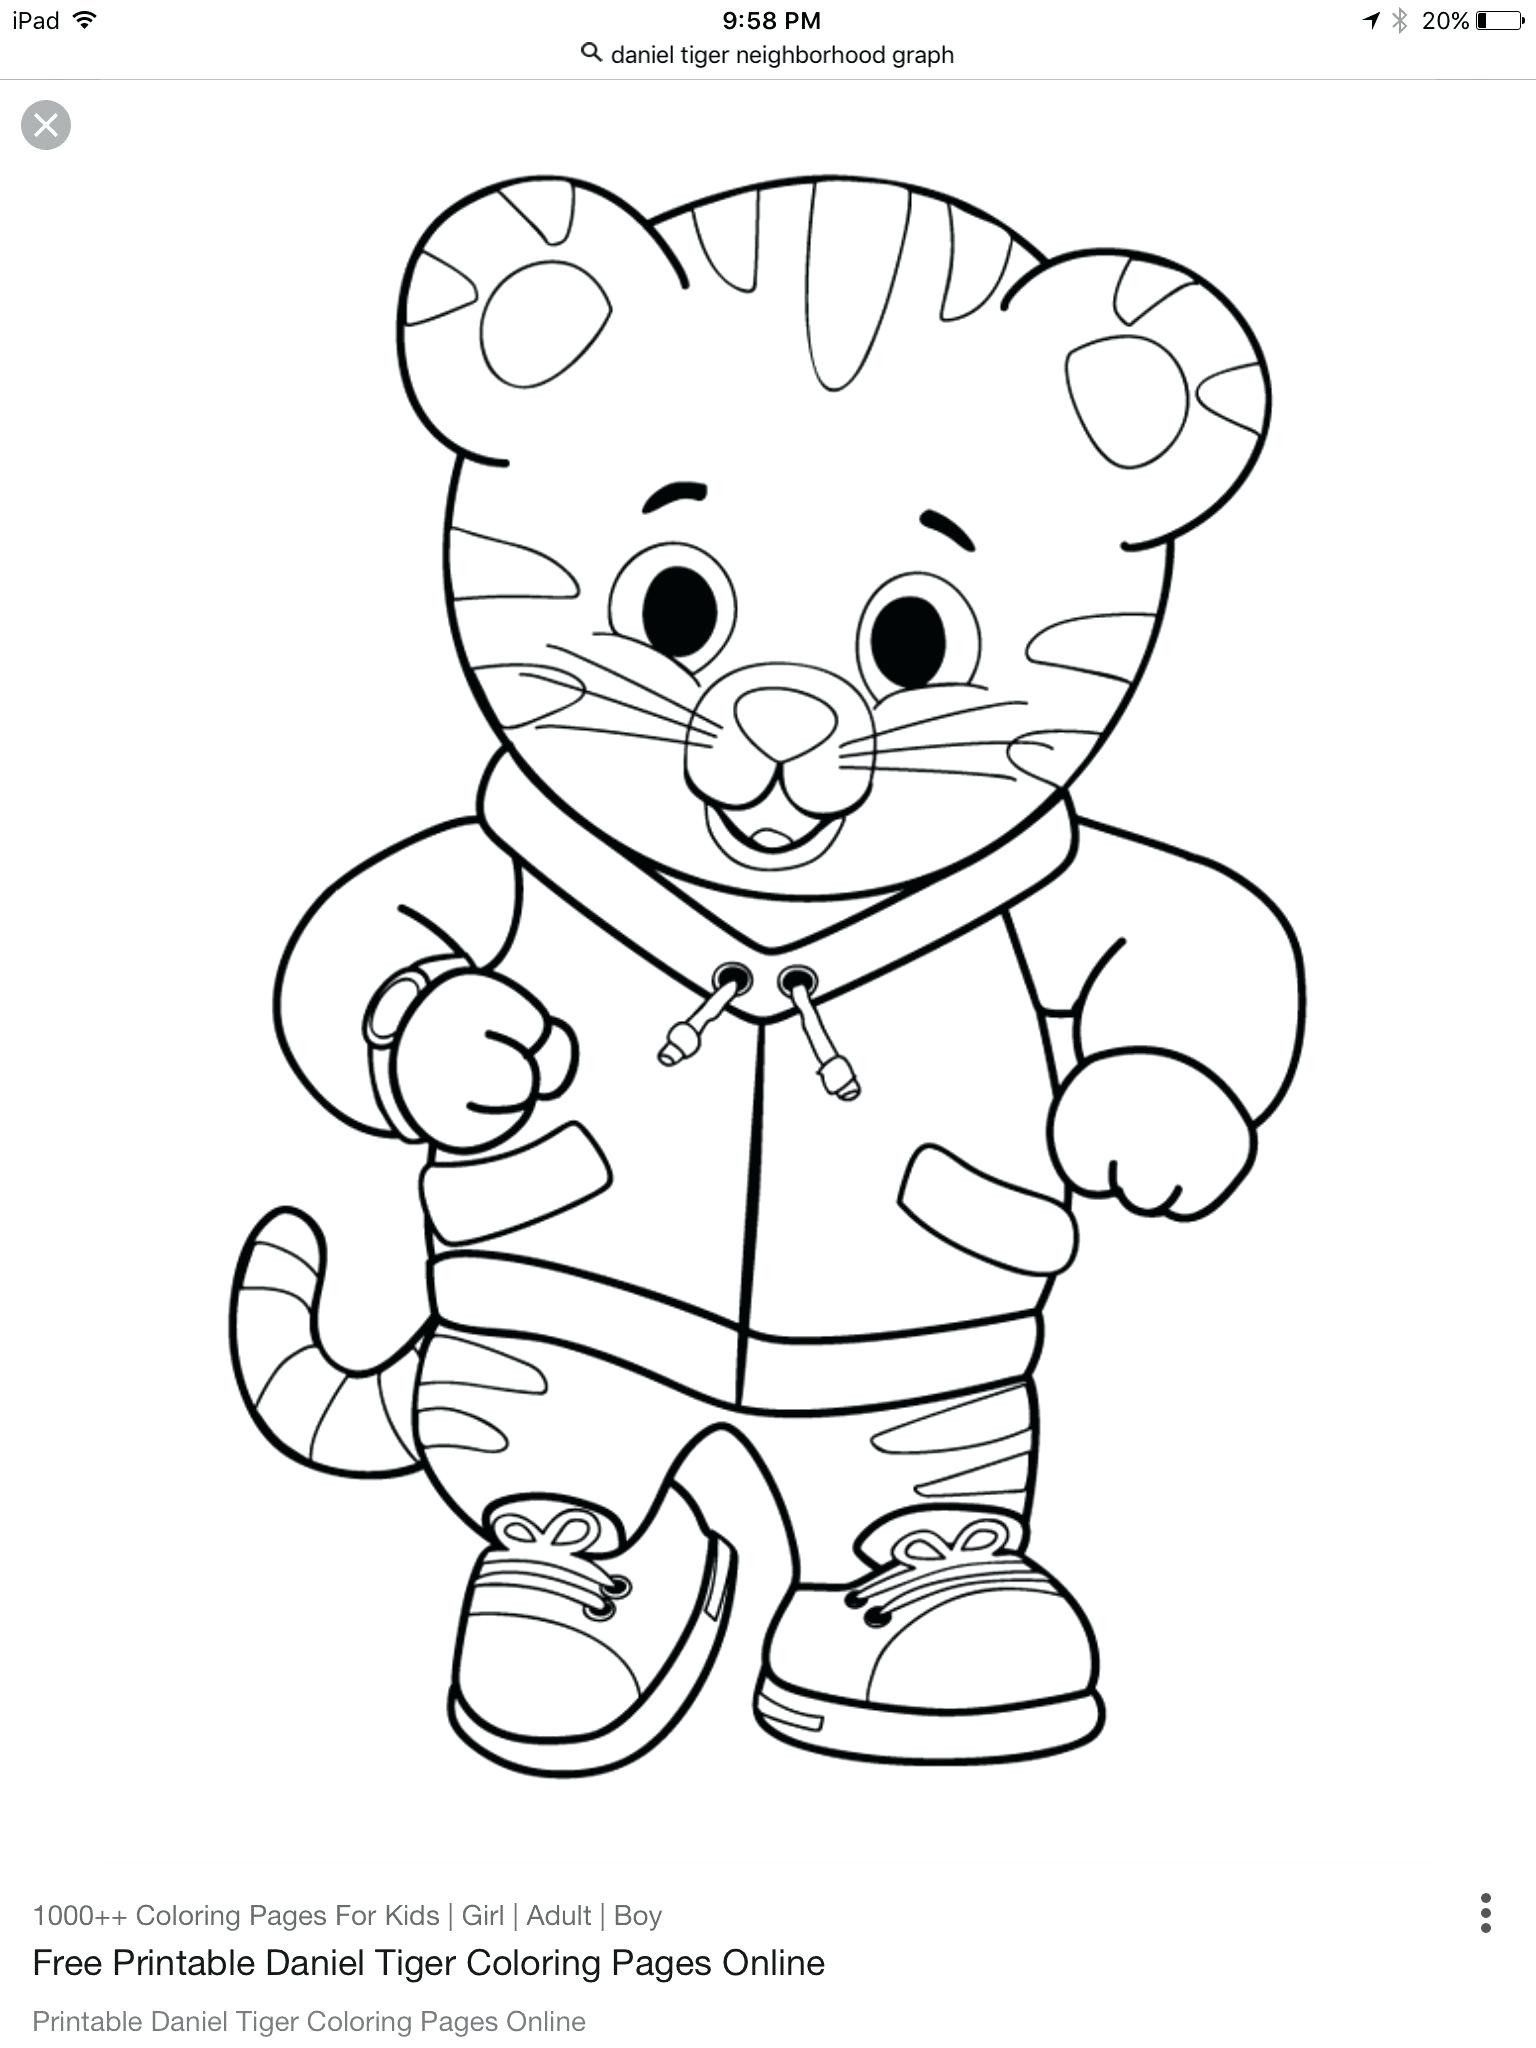 Daniel Tiger Coloring Pages Awesome Dear Daniel Coloring Pages – Tedpaper |  Daniel tiger birthday, Daniel tiger, Daniel tiger birthday party